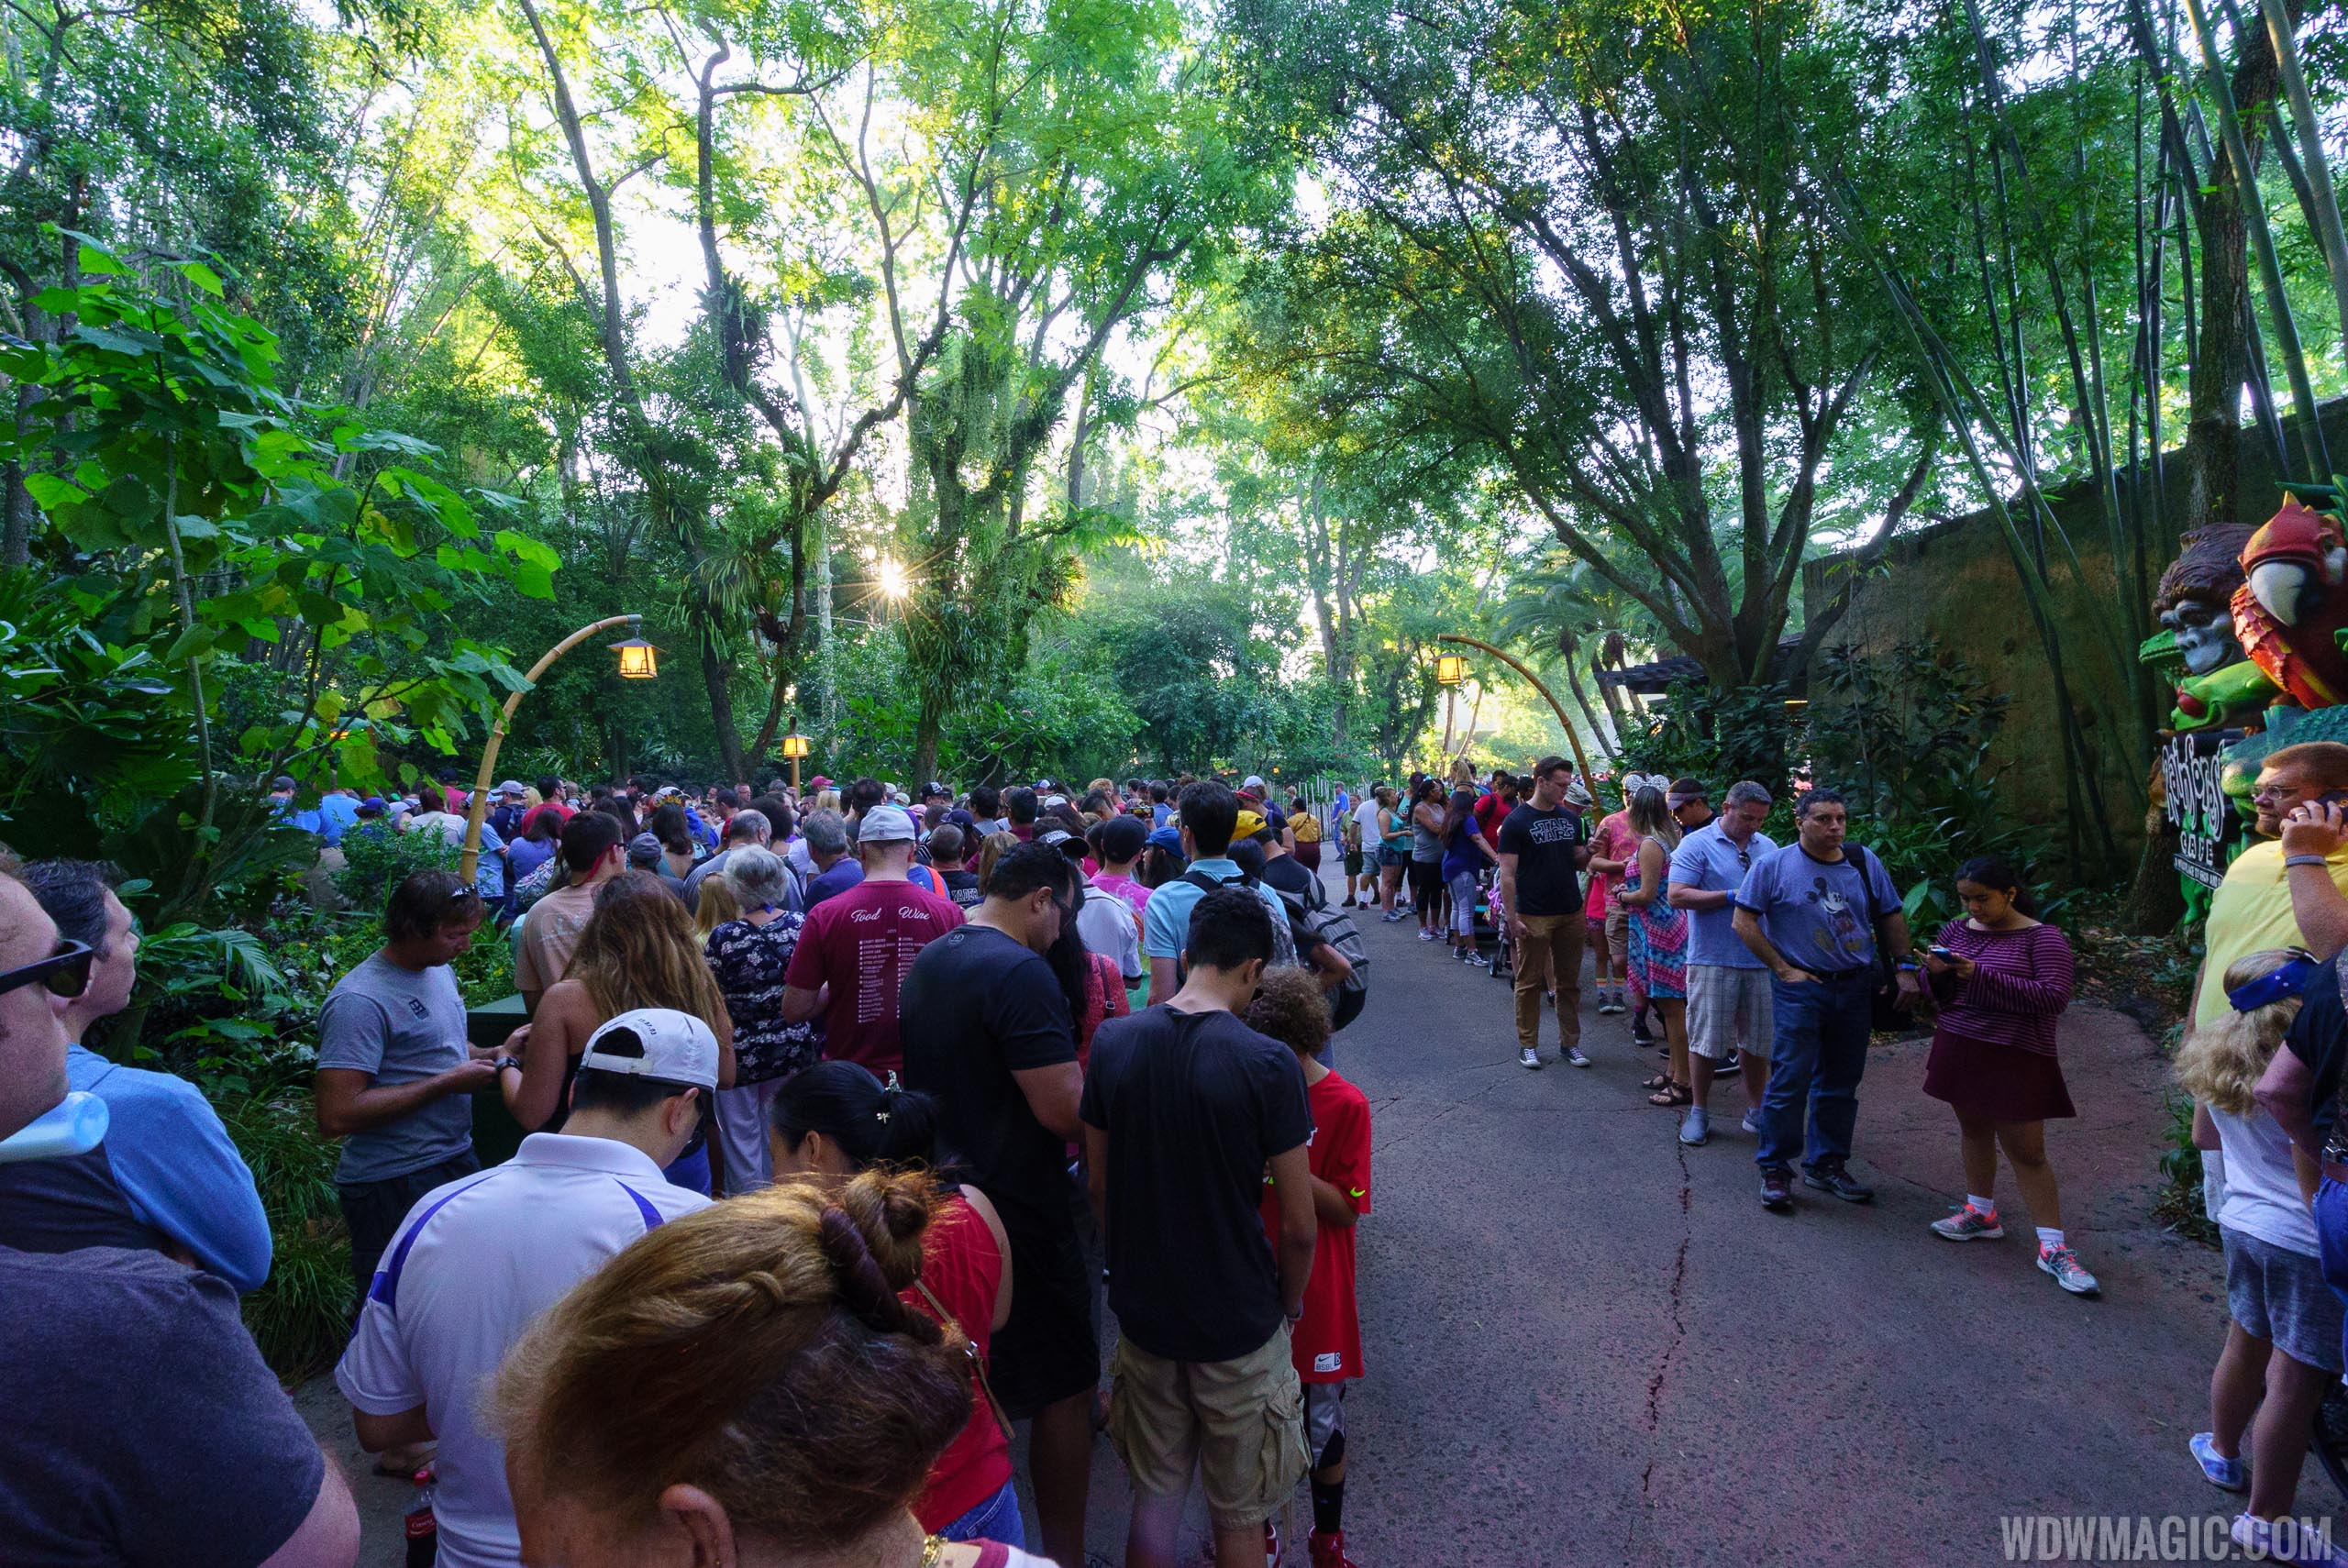 opening day crowds at pandora the world of avatar photo 1 of 13